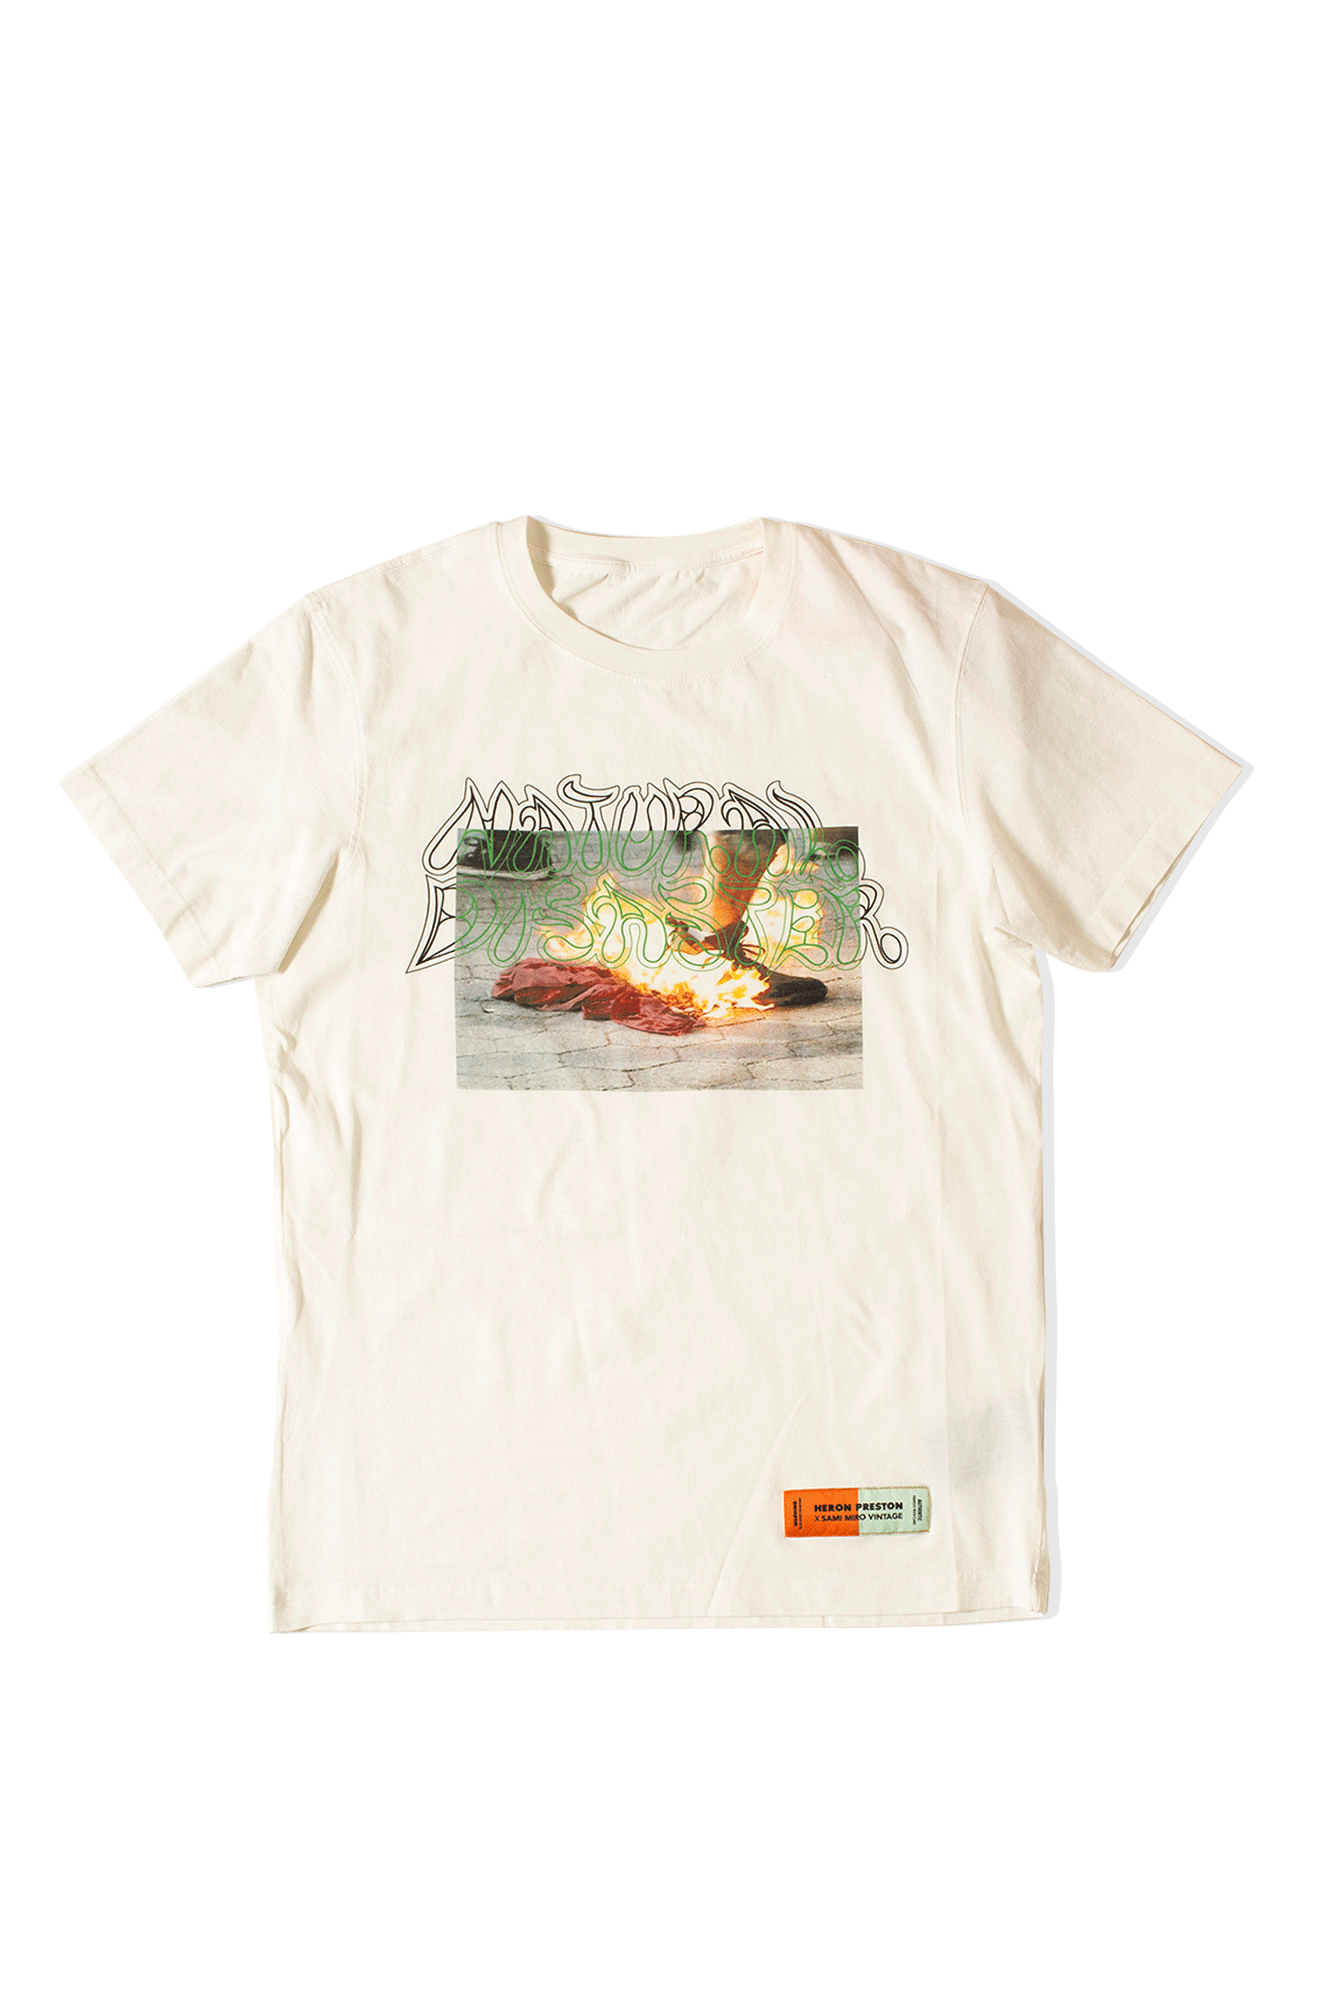 Heron Preston X Sami Miro T-Shirt White